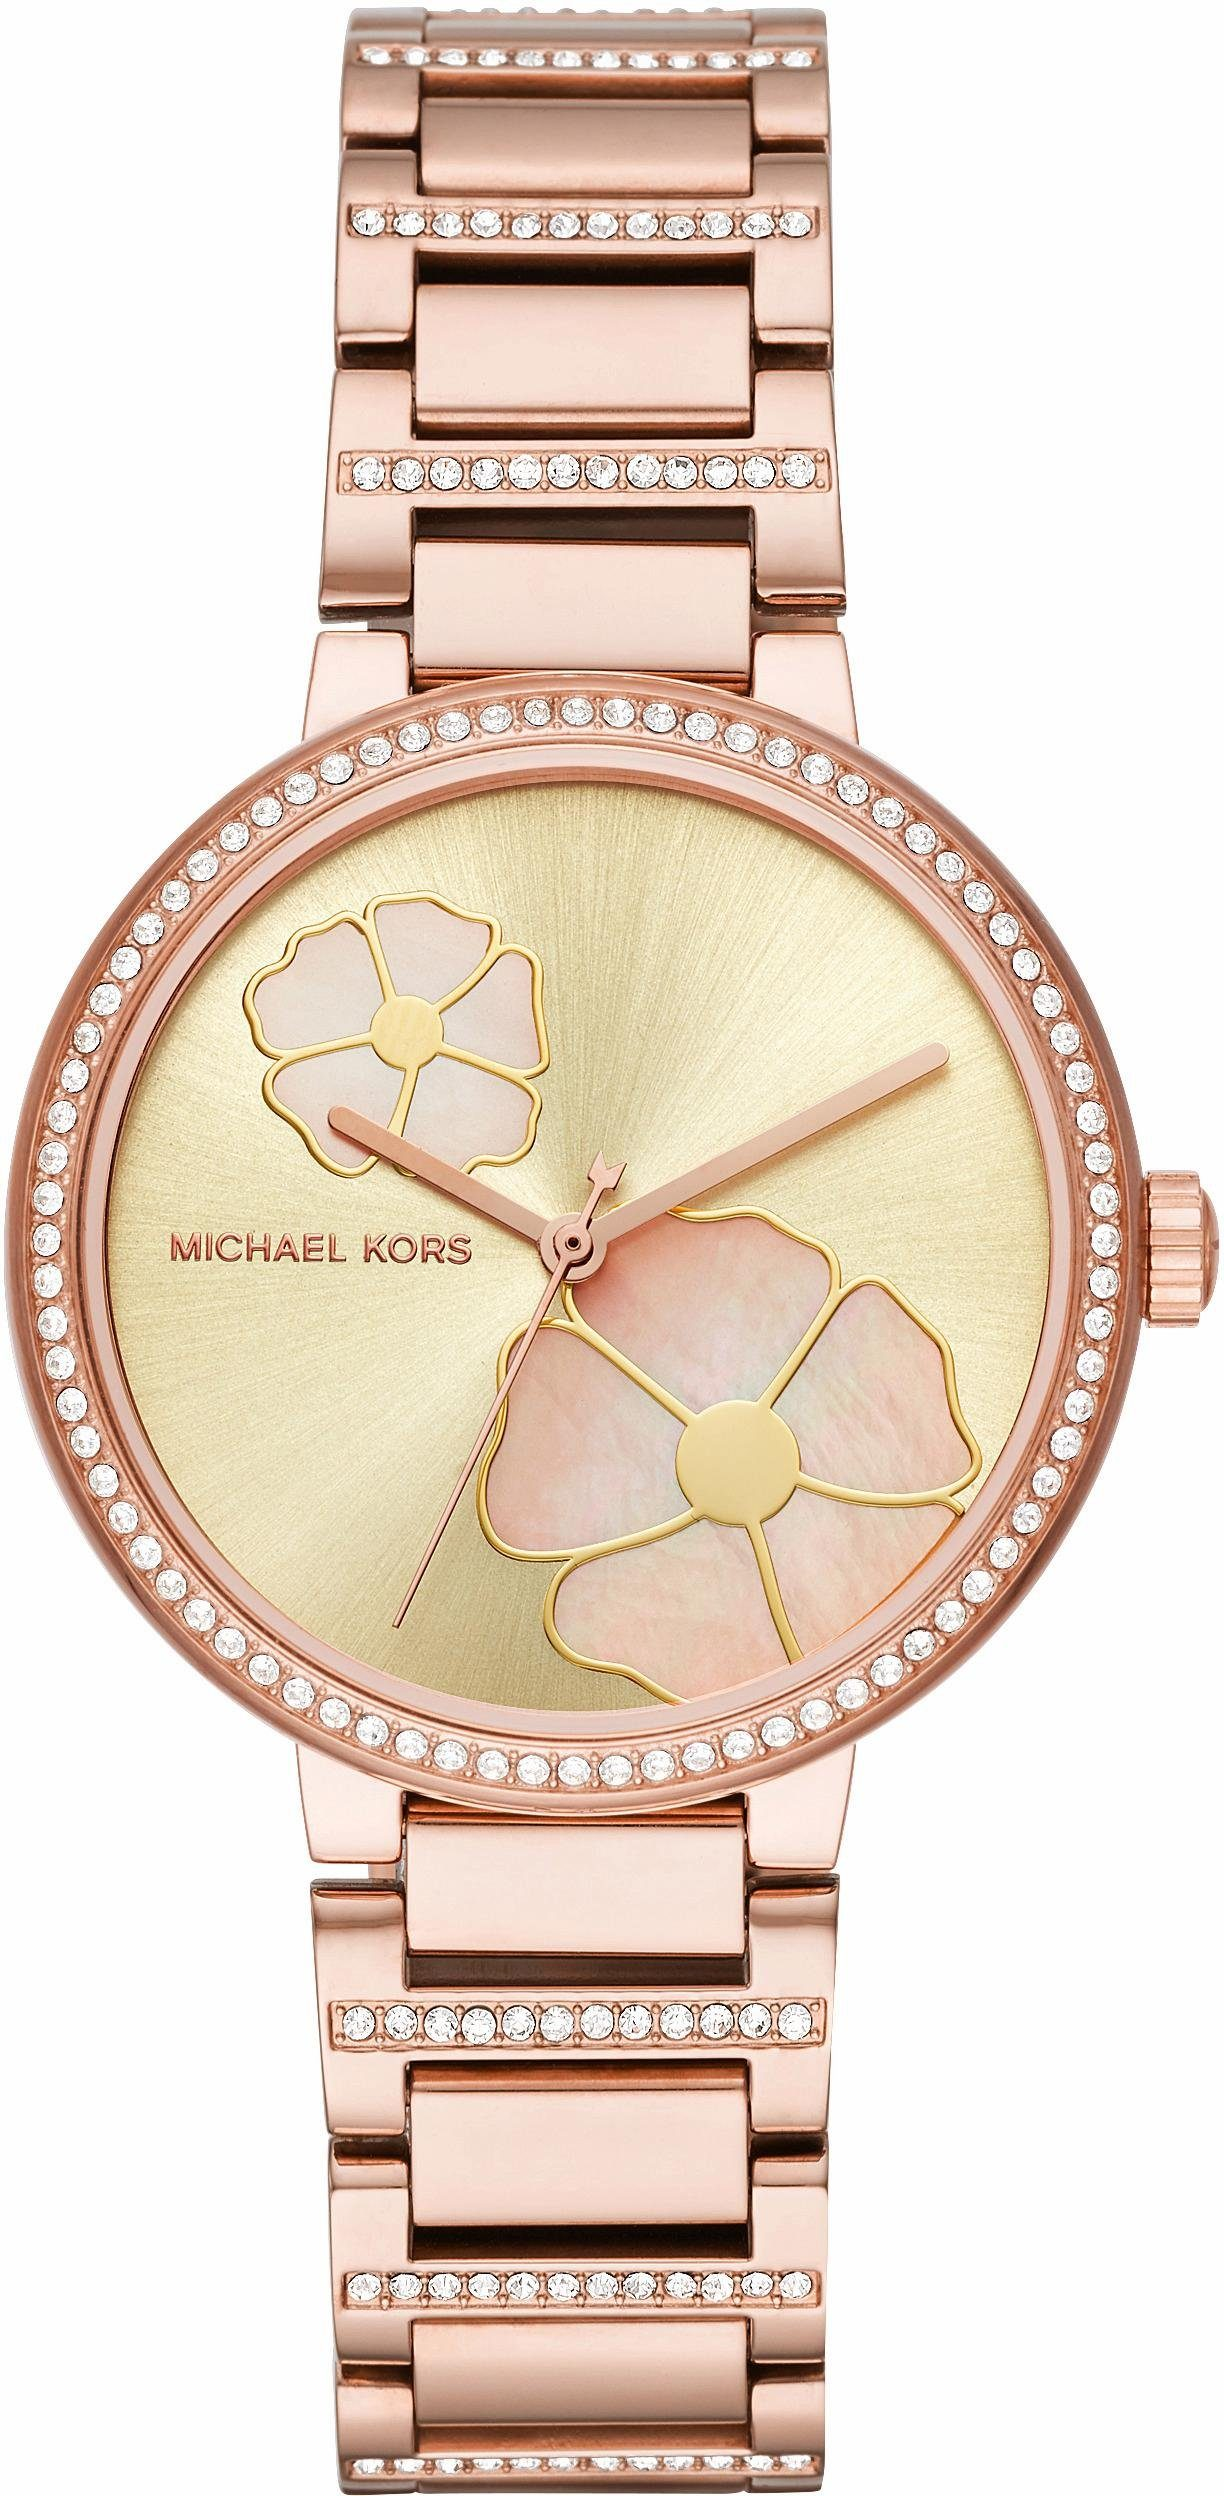 MICHAEL KORS Quarzuhr »COURTNEY, MK3836« kaufen | OTTO